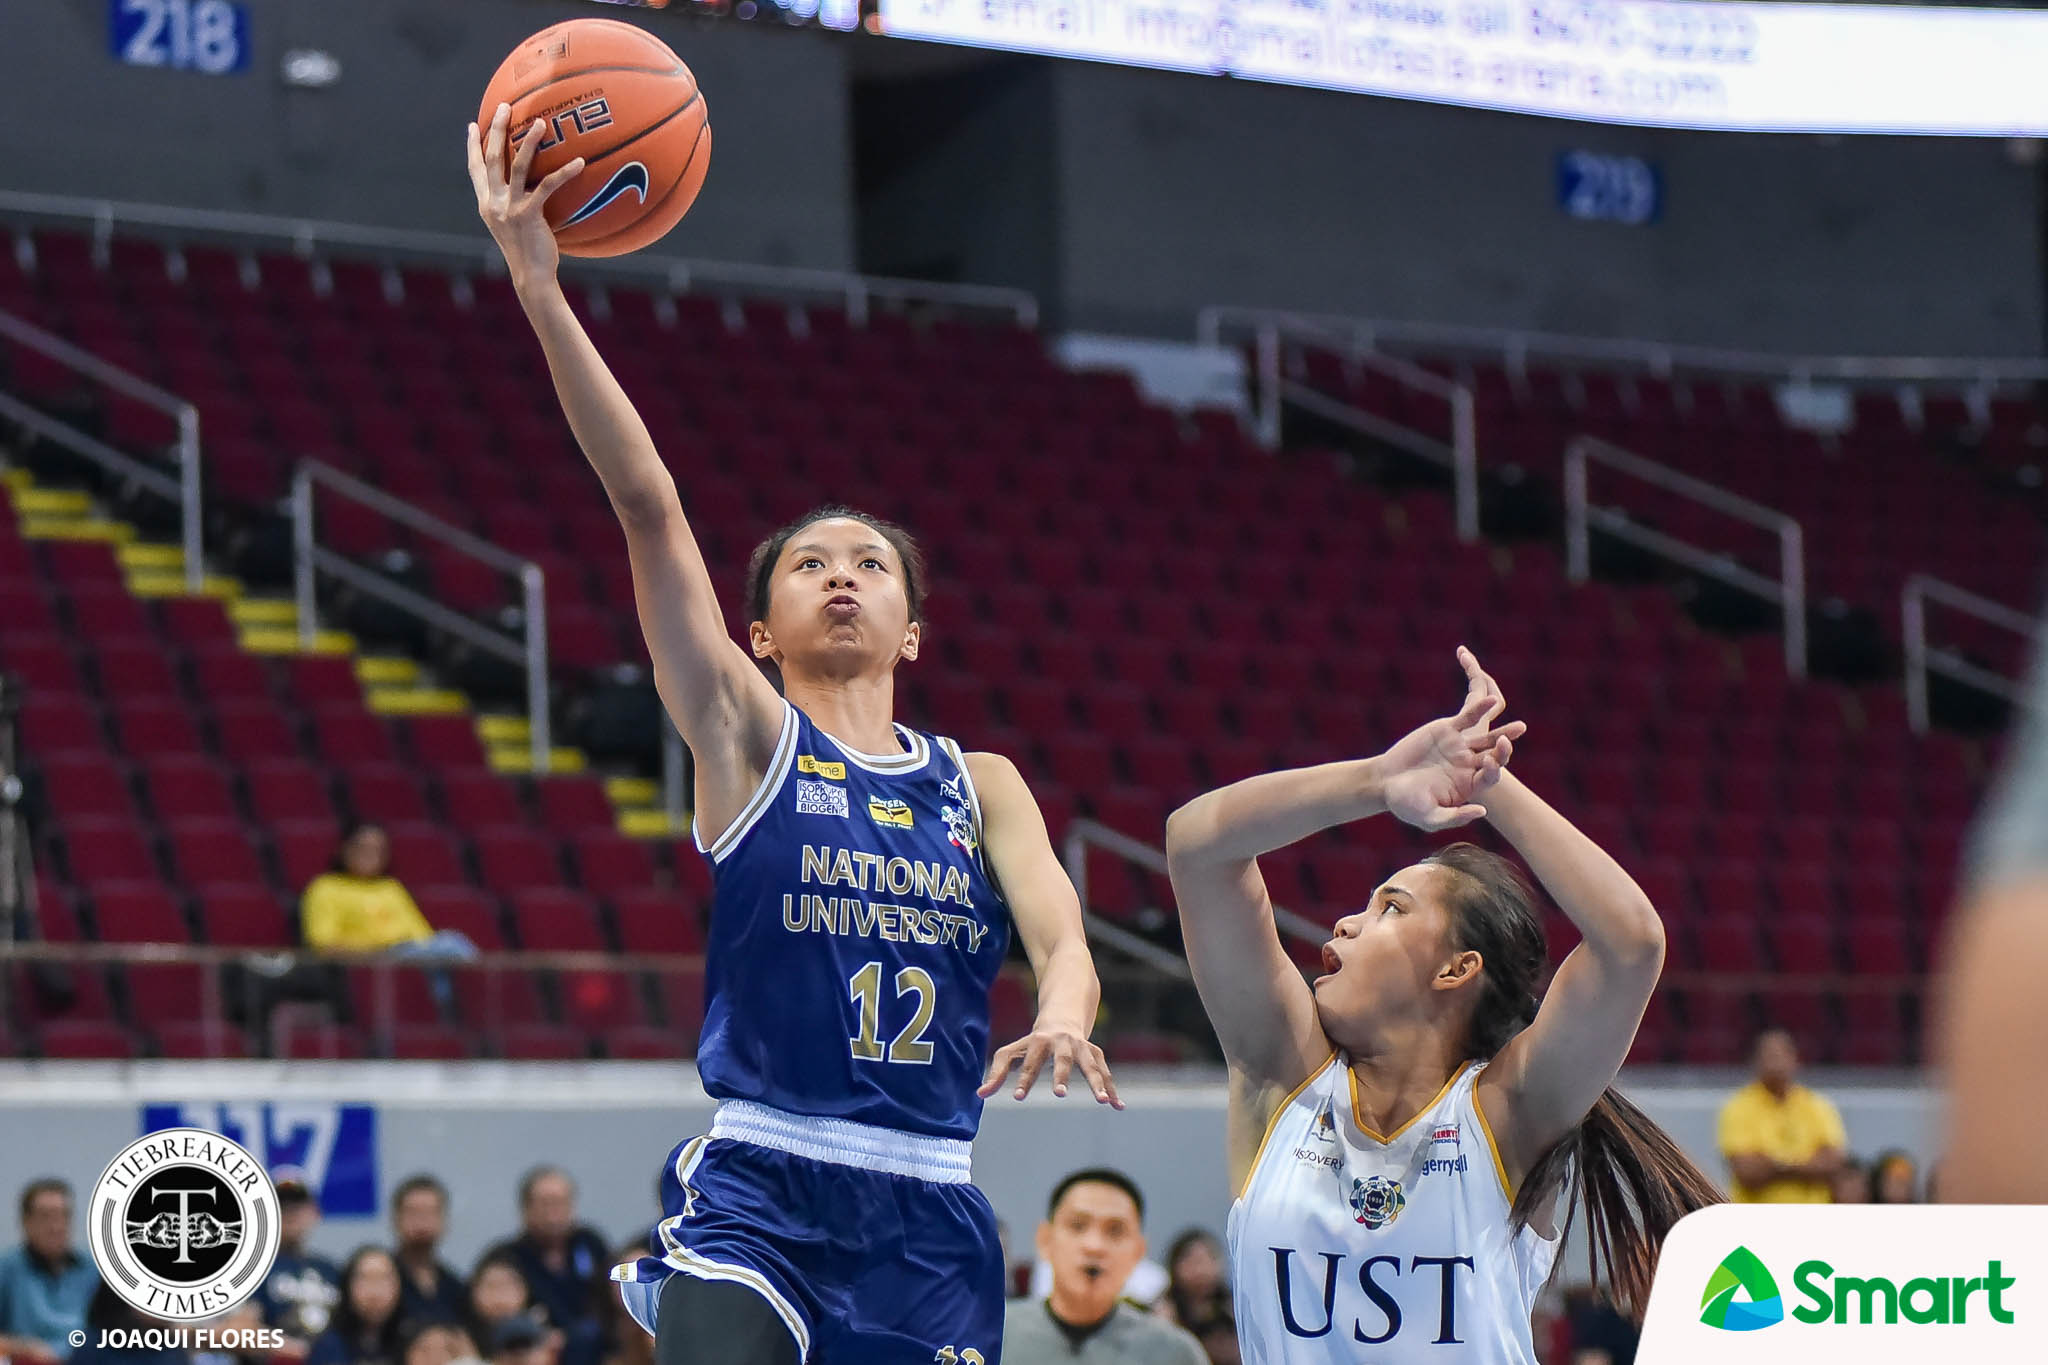 UAAP-82-WBB-Finals-G2-NU-vs.-UST-Del-Carmen-5726 Just like in NU, Del Carmen looks to prove worth after falling in WNBL Draft Basketball NBL News  - philippine sports news